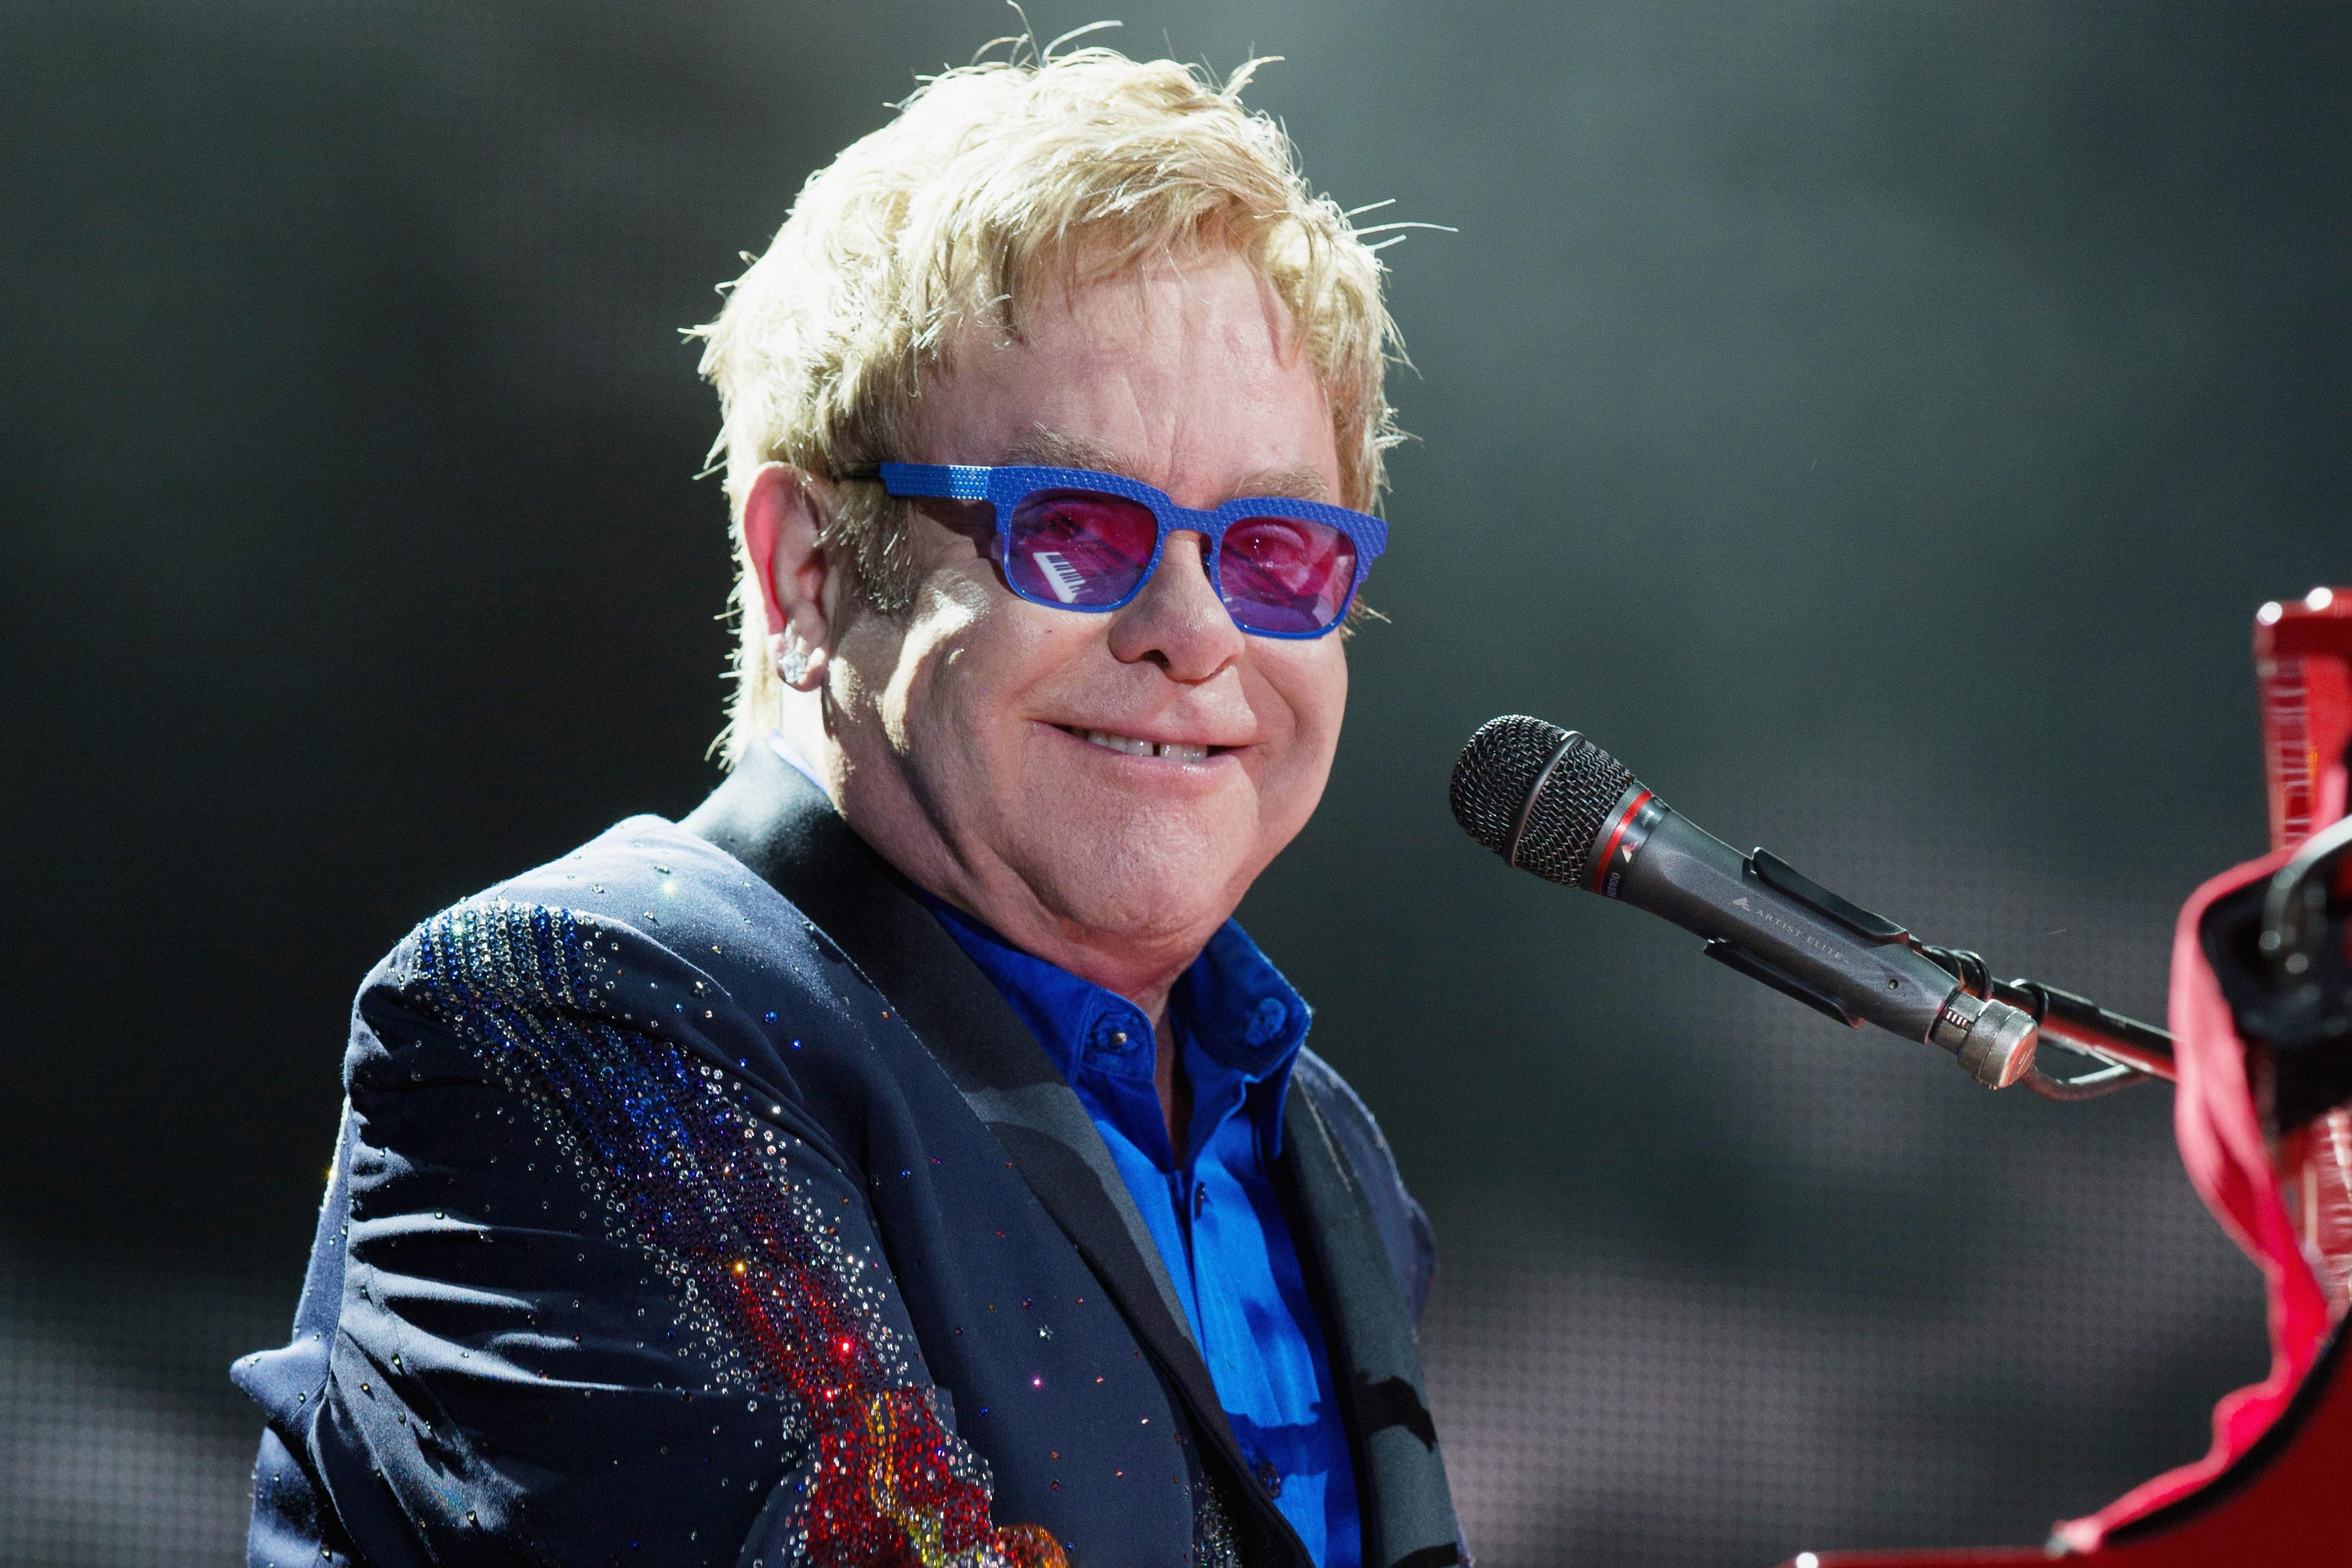 Sir Elton John is the most charitable person.